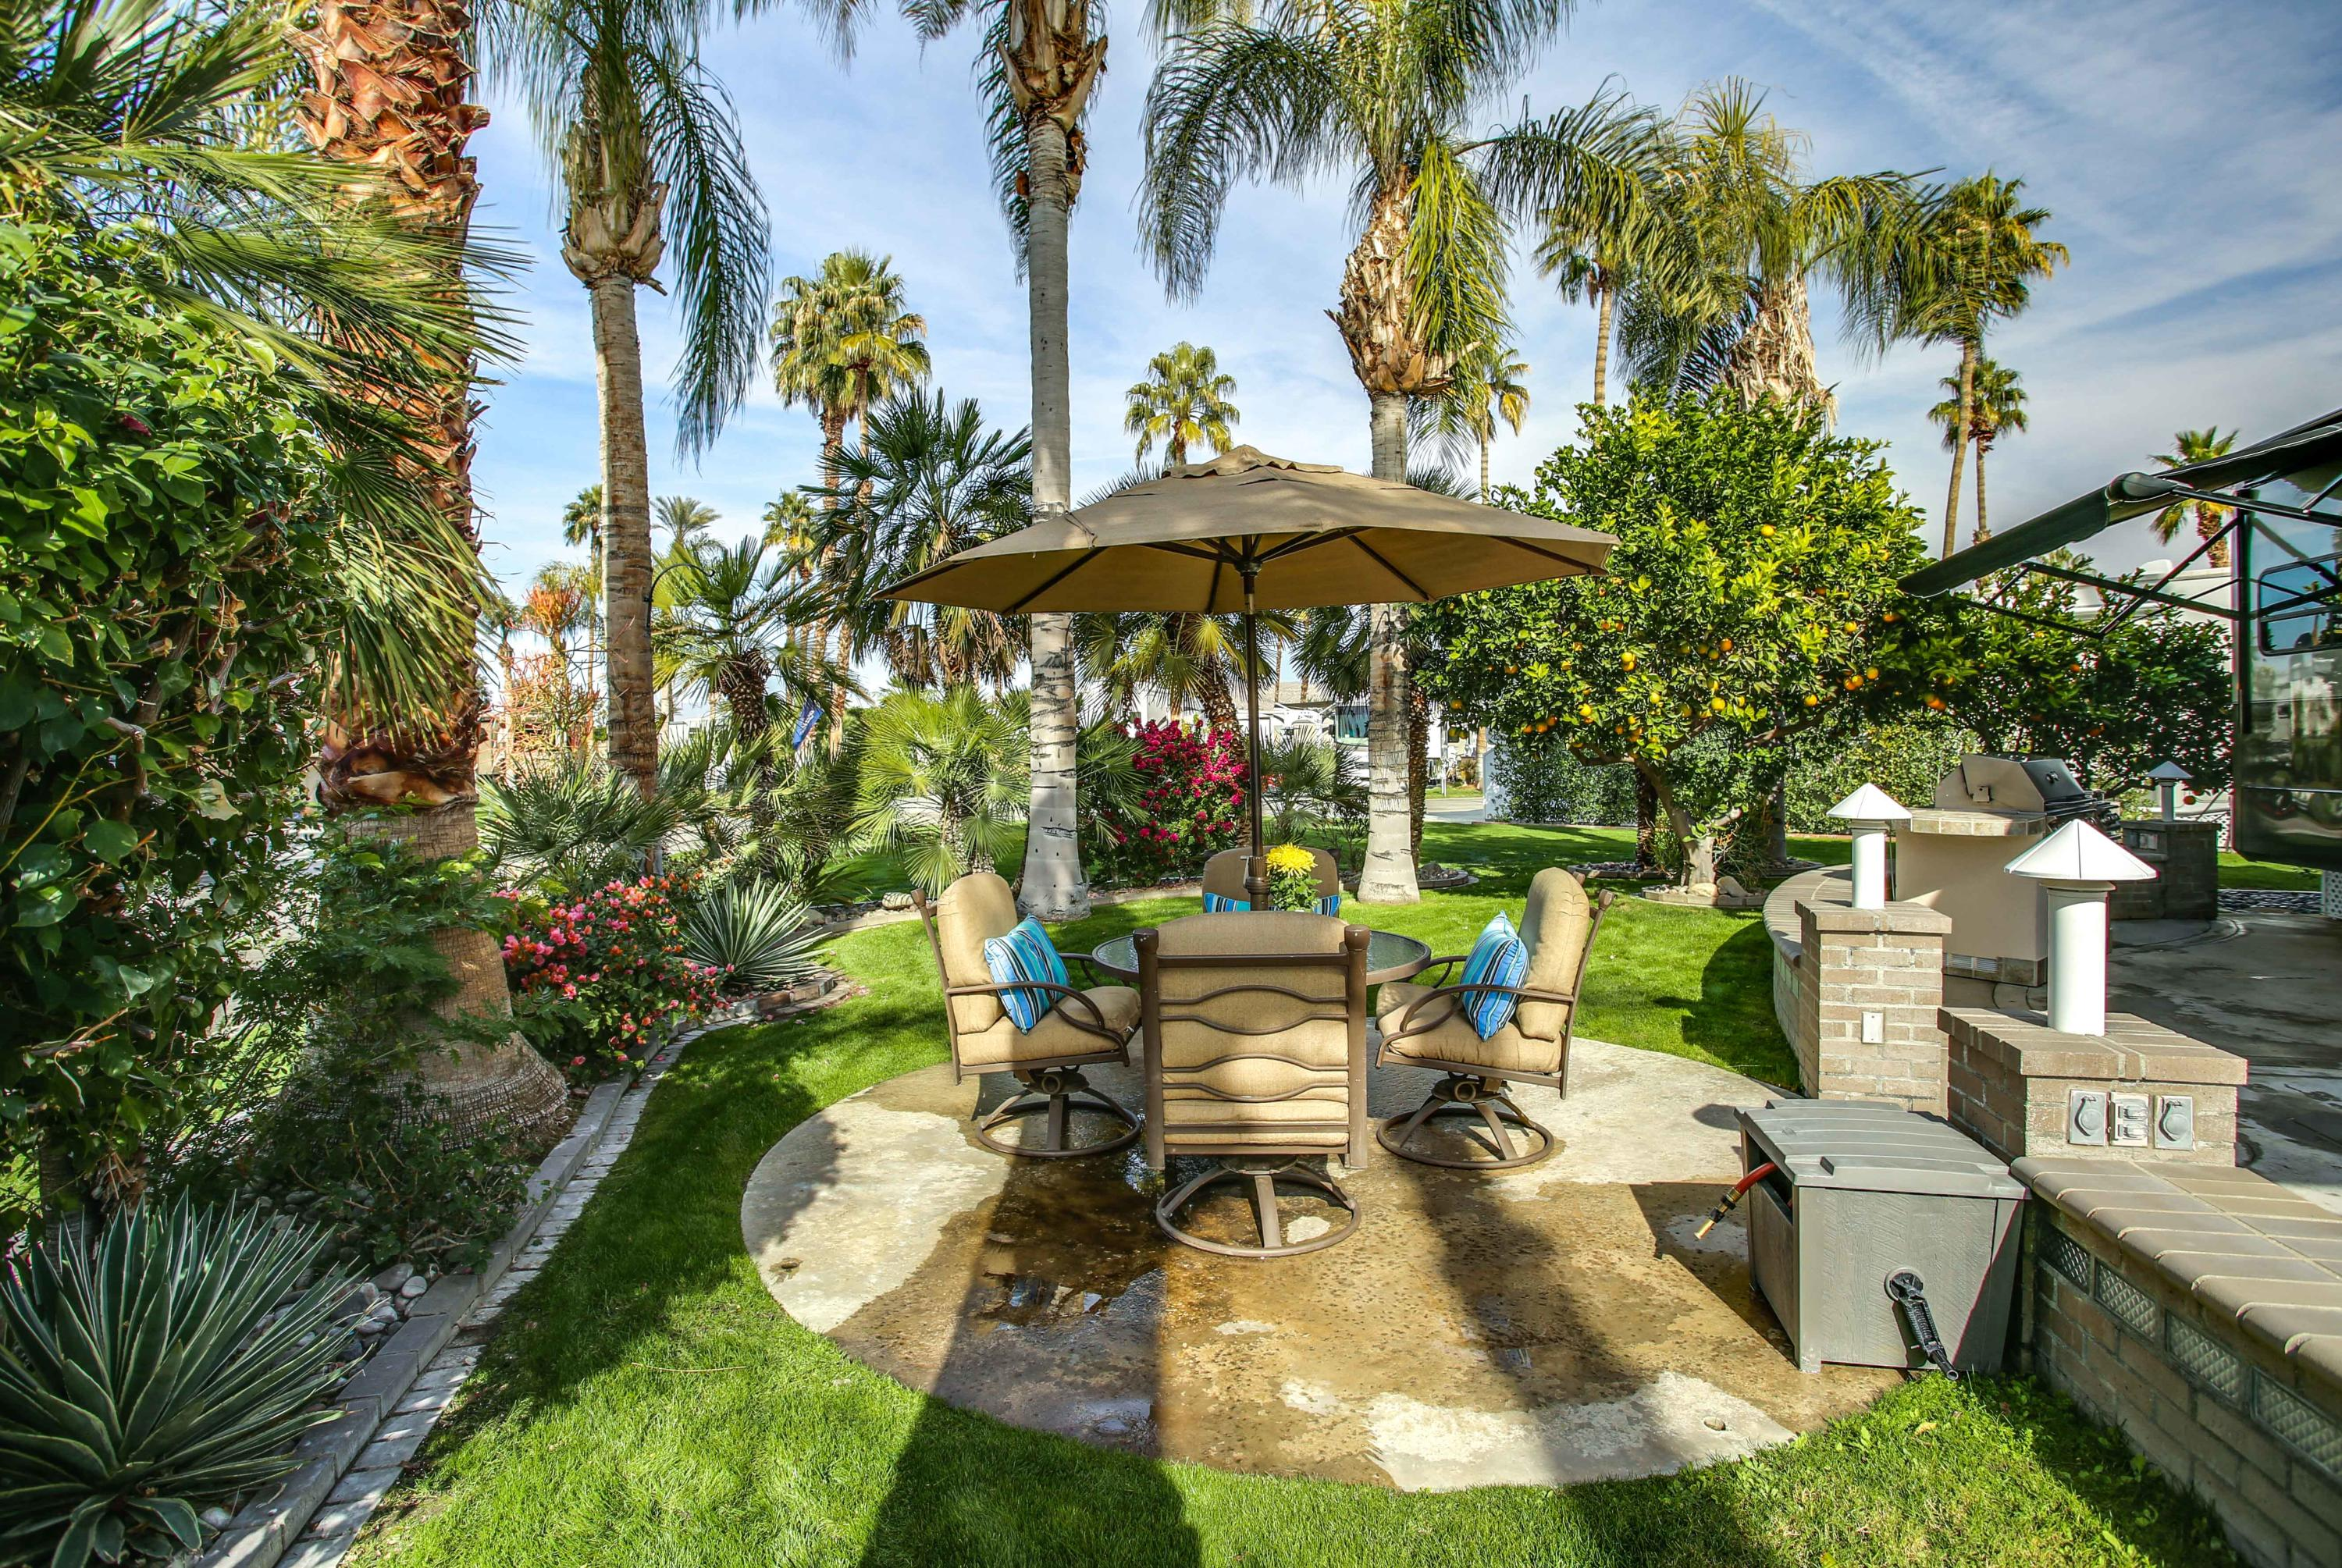 69411 Ramon Road, Cathedral City, California 92234, ,Land,For Sale,69411 Ramon Road,219043917